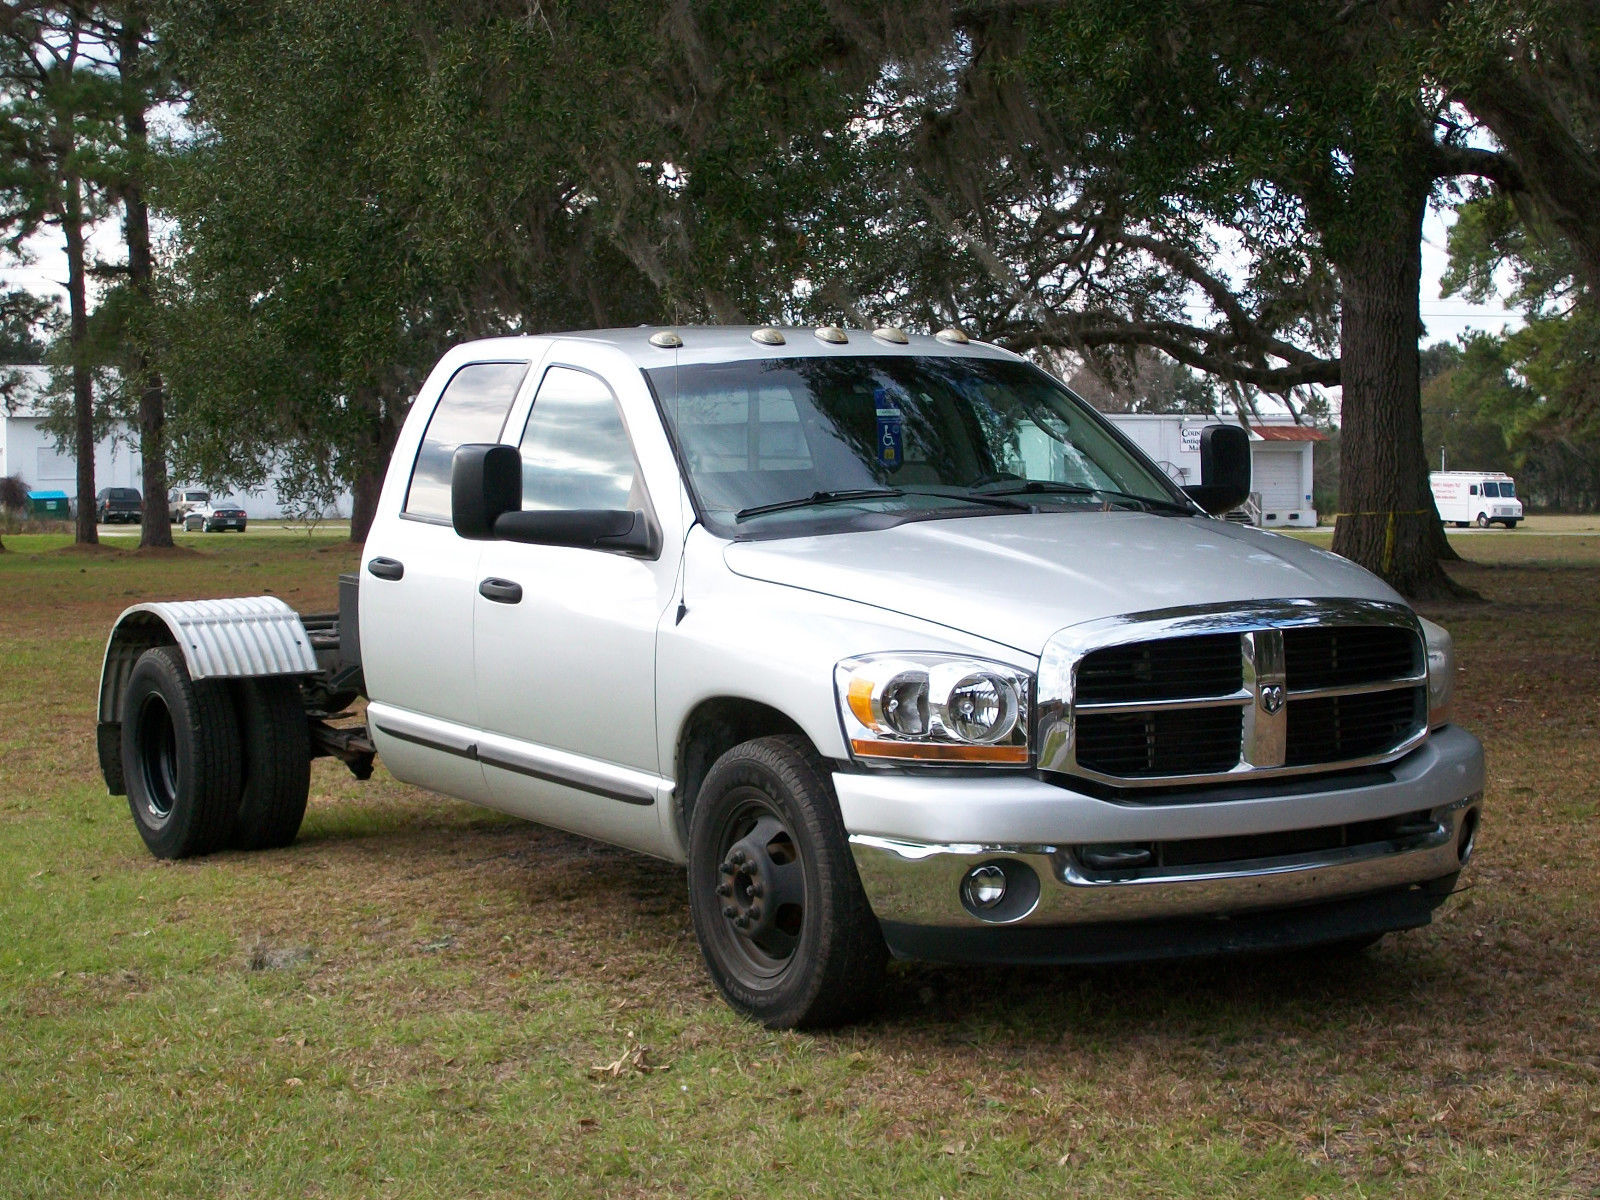 2006 dodge ram 3500 crew cab 5 9 diesel tow monster for sale - Crew cab dodge ram ...